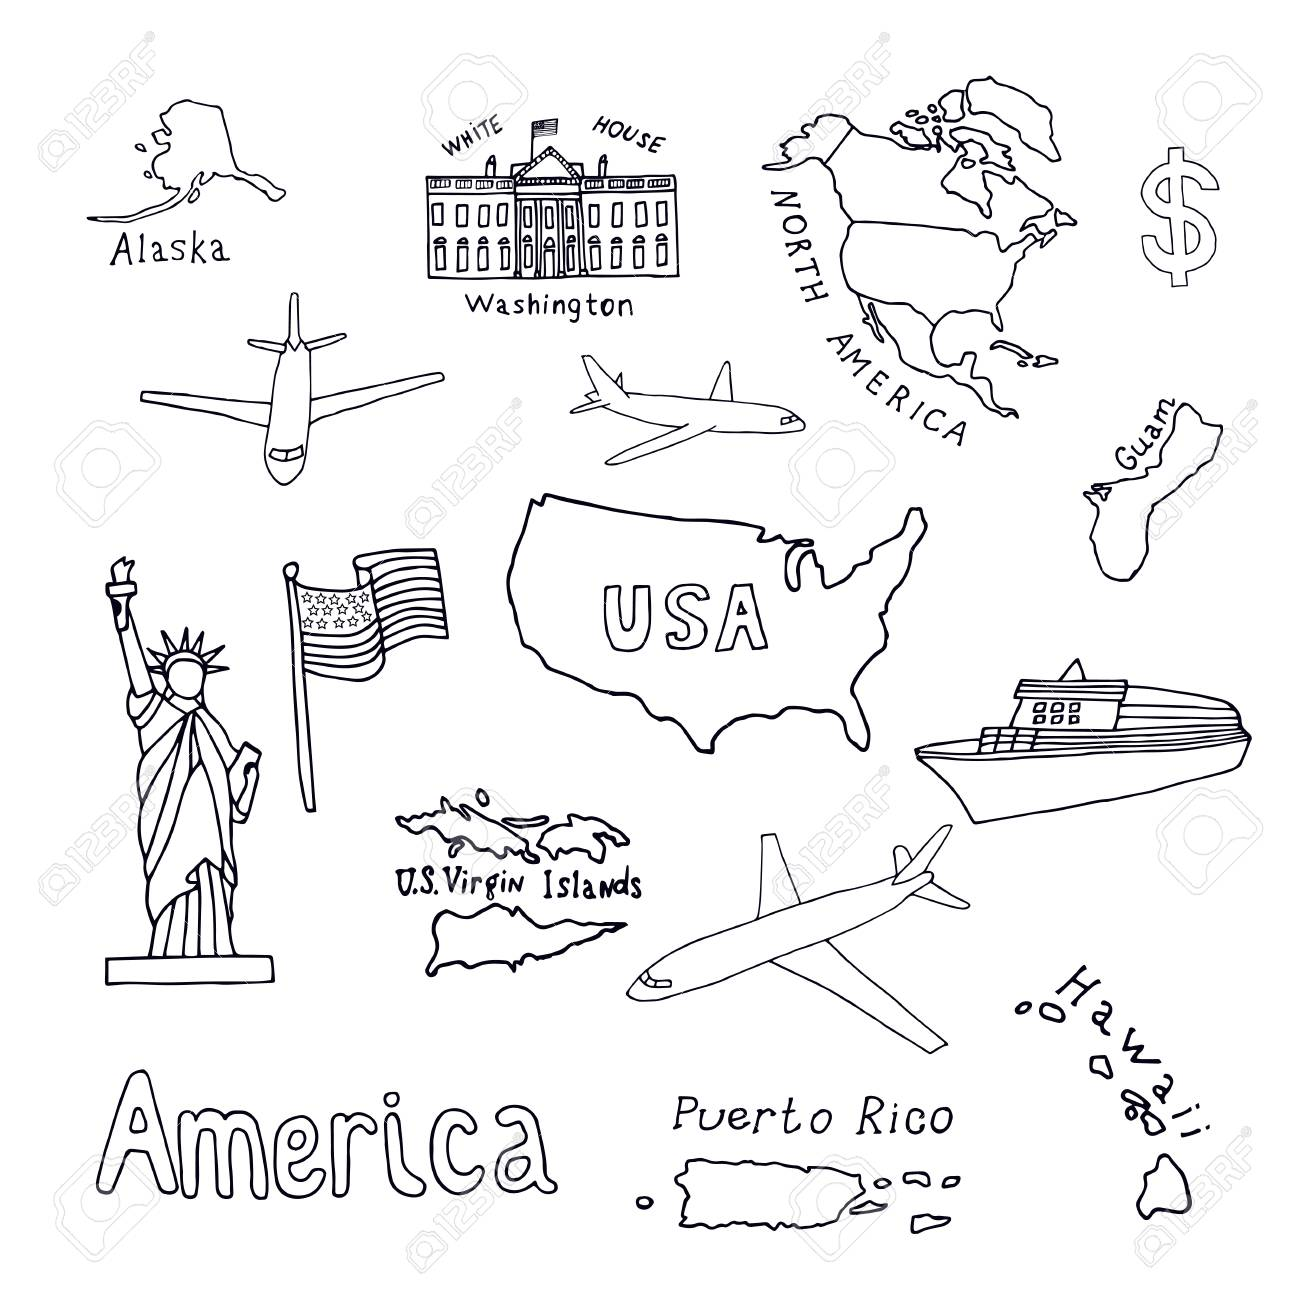 Map of the United States of America and its territories. North..